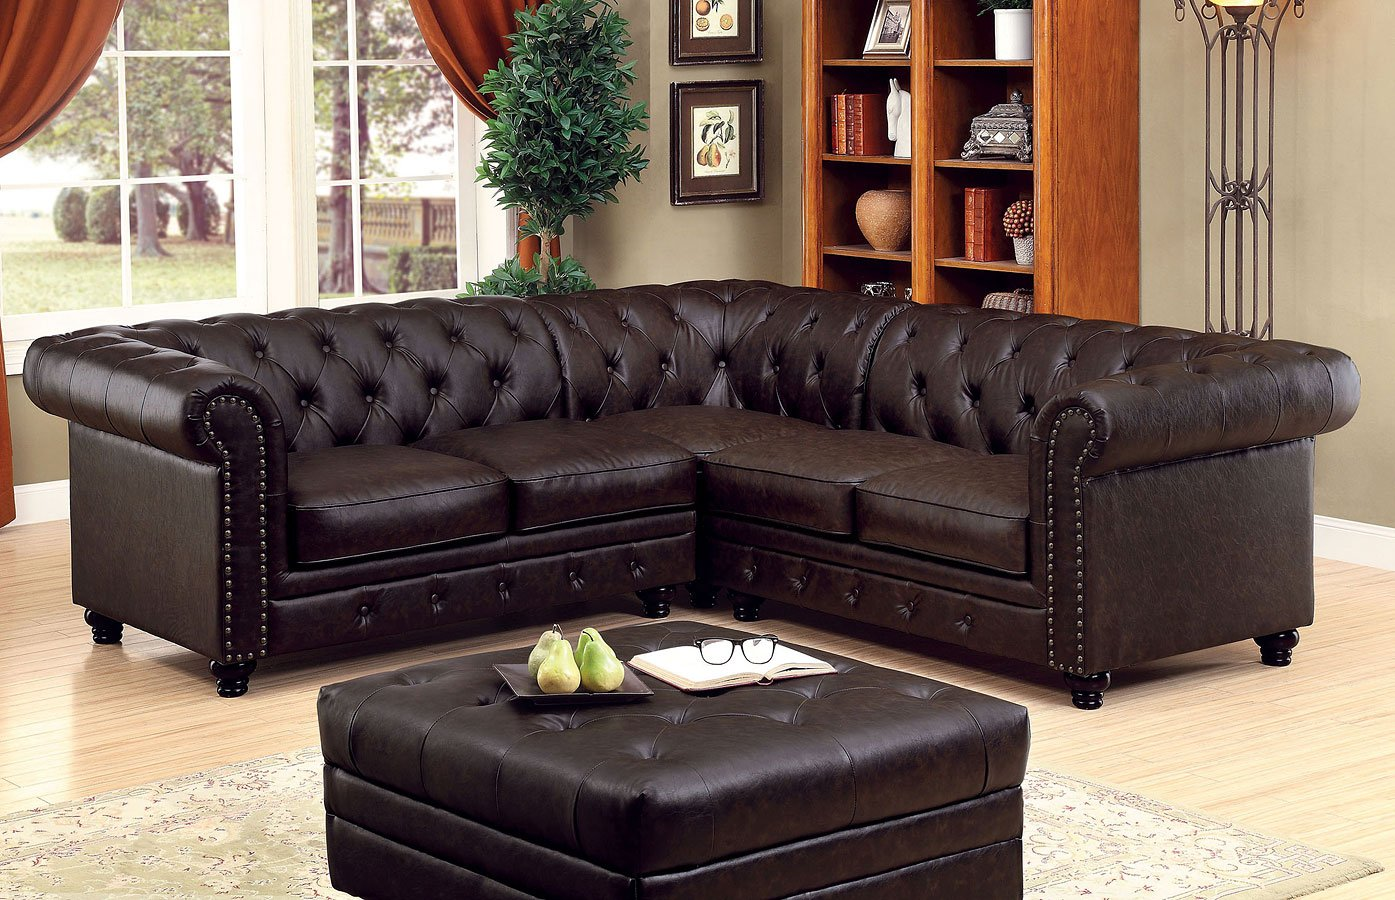 Stanford Sectional Living Room Set (Brown) by Furniture of America ...